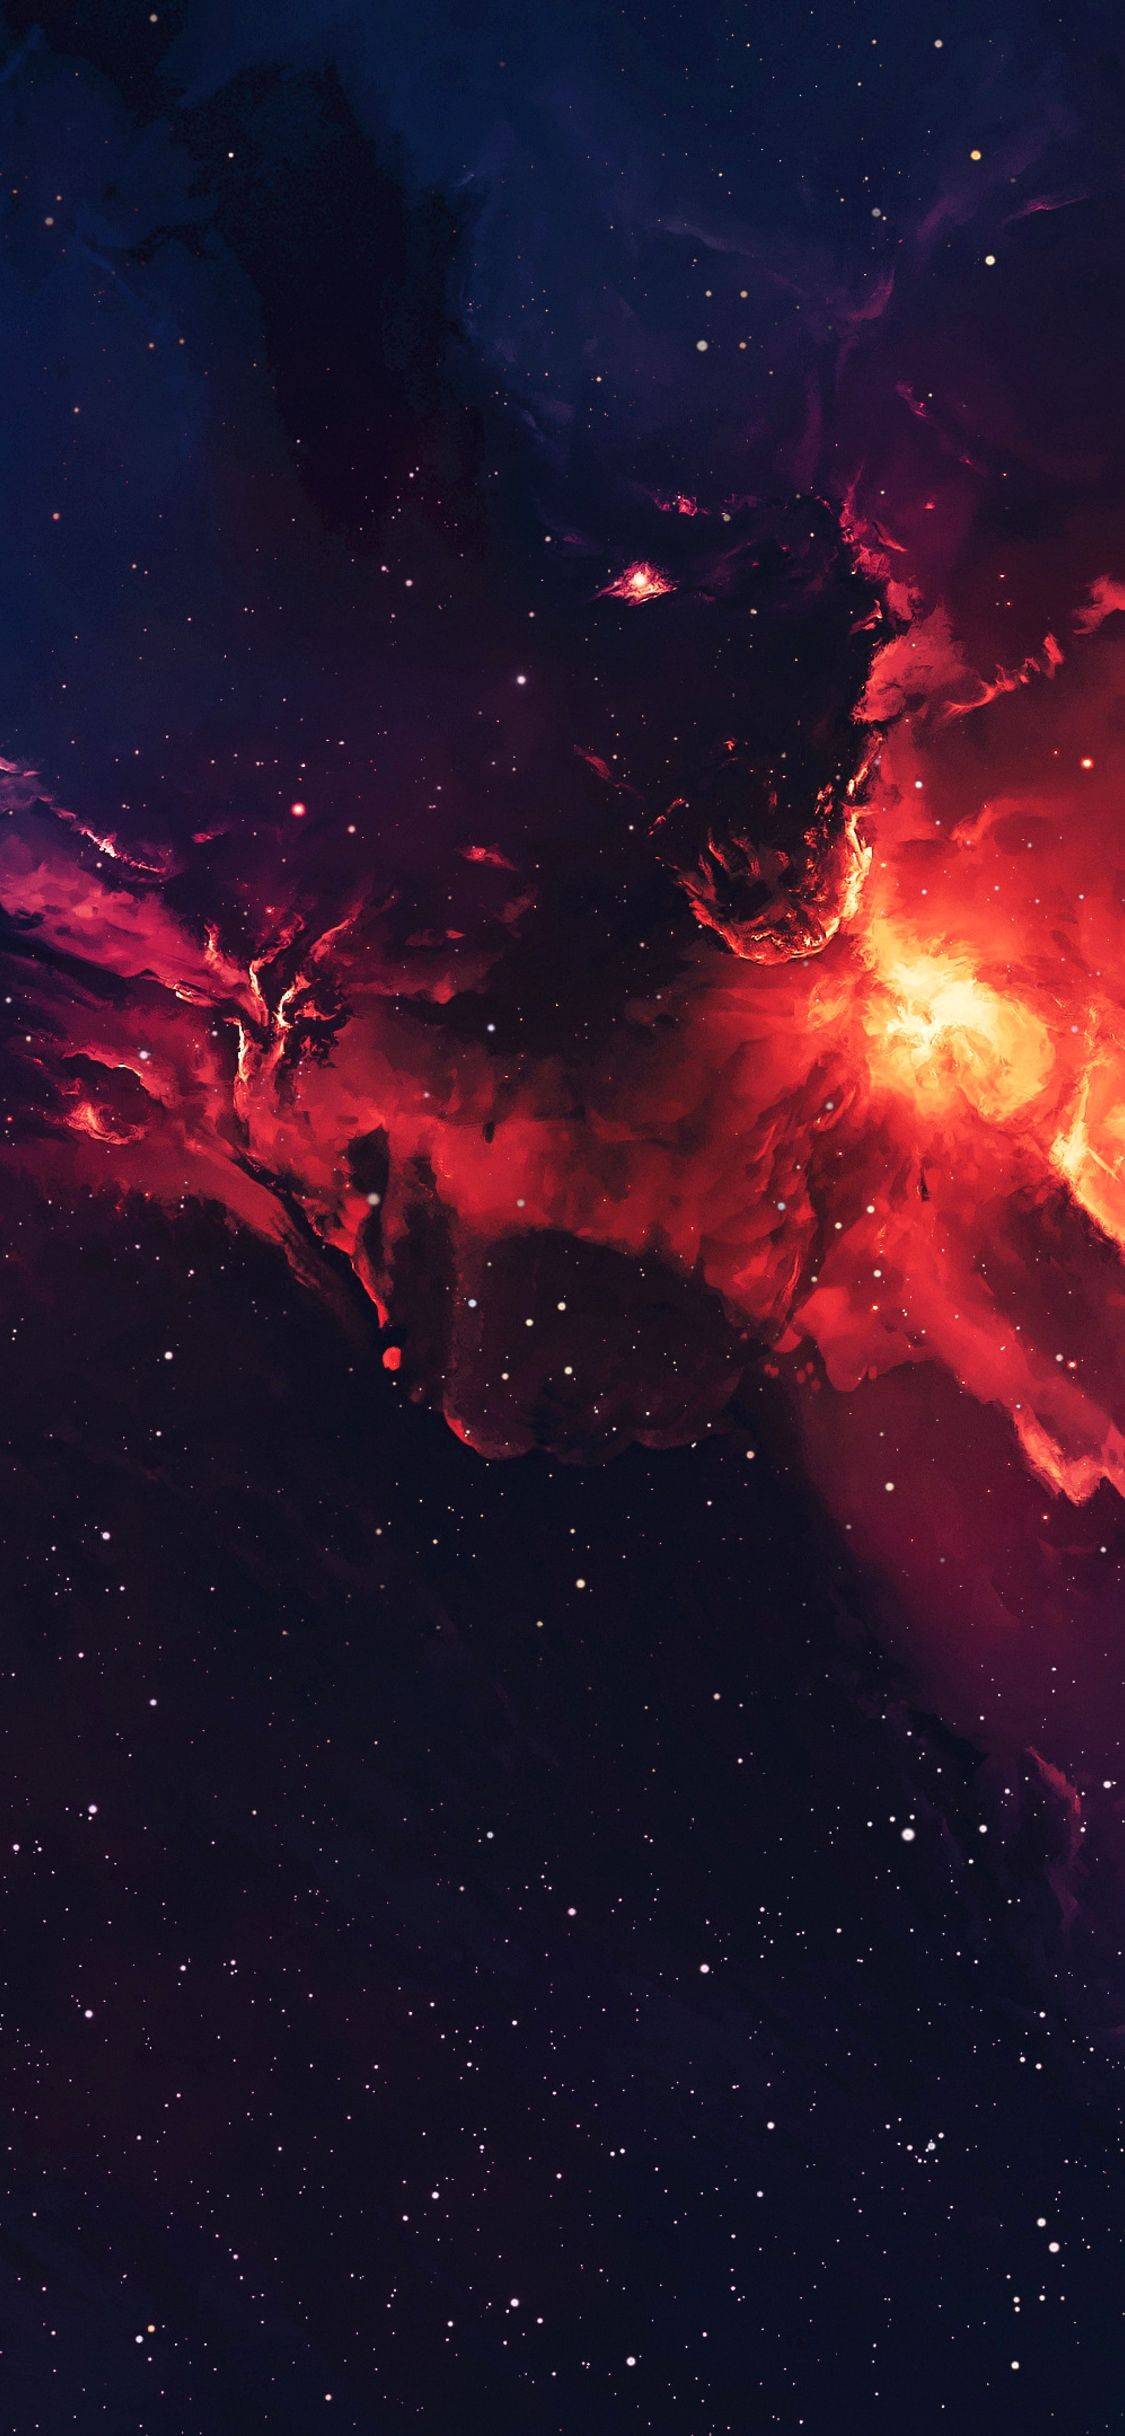 4k Wallpaper Iphone X Space Gallery Fondos De Pantalla Para Samsung Galaxy Fondos De Pantallla Wallpapers En Hd